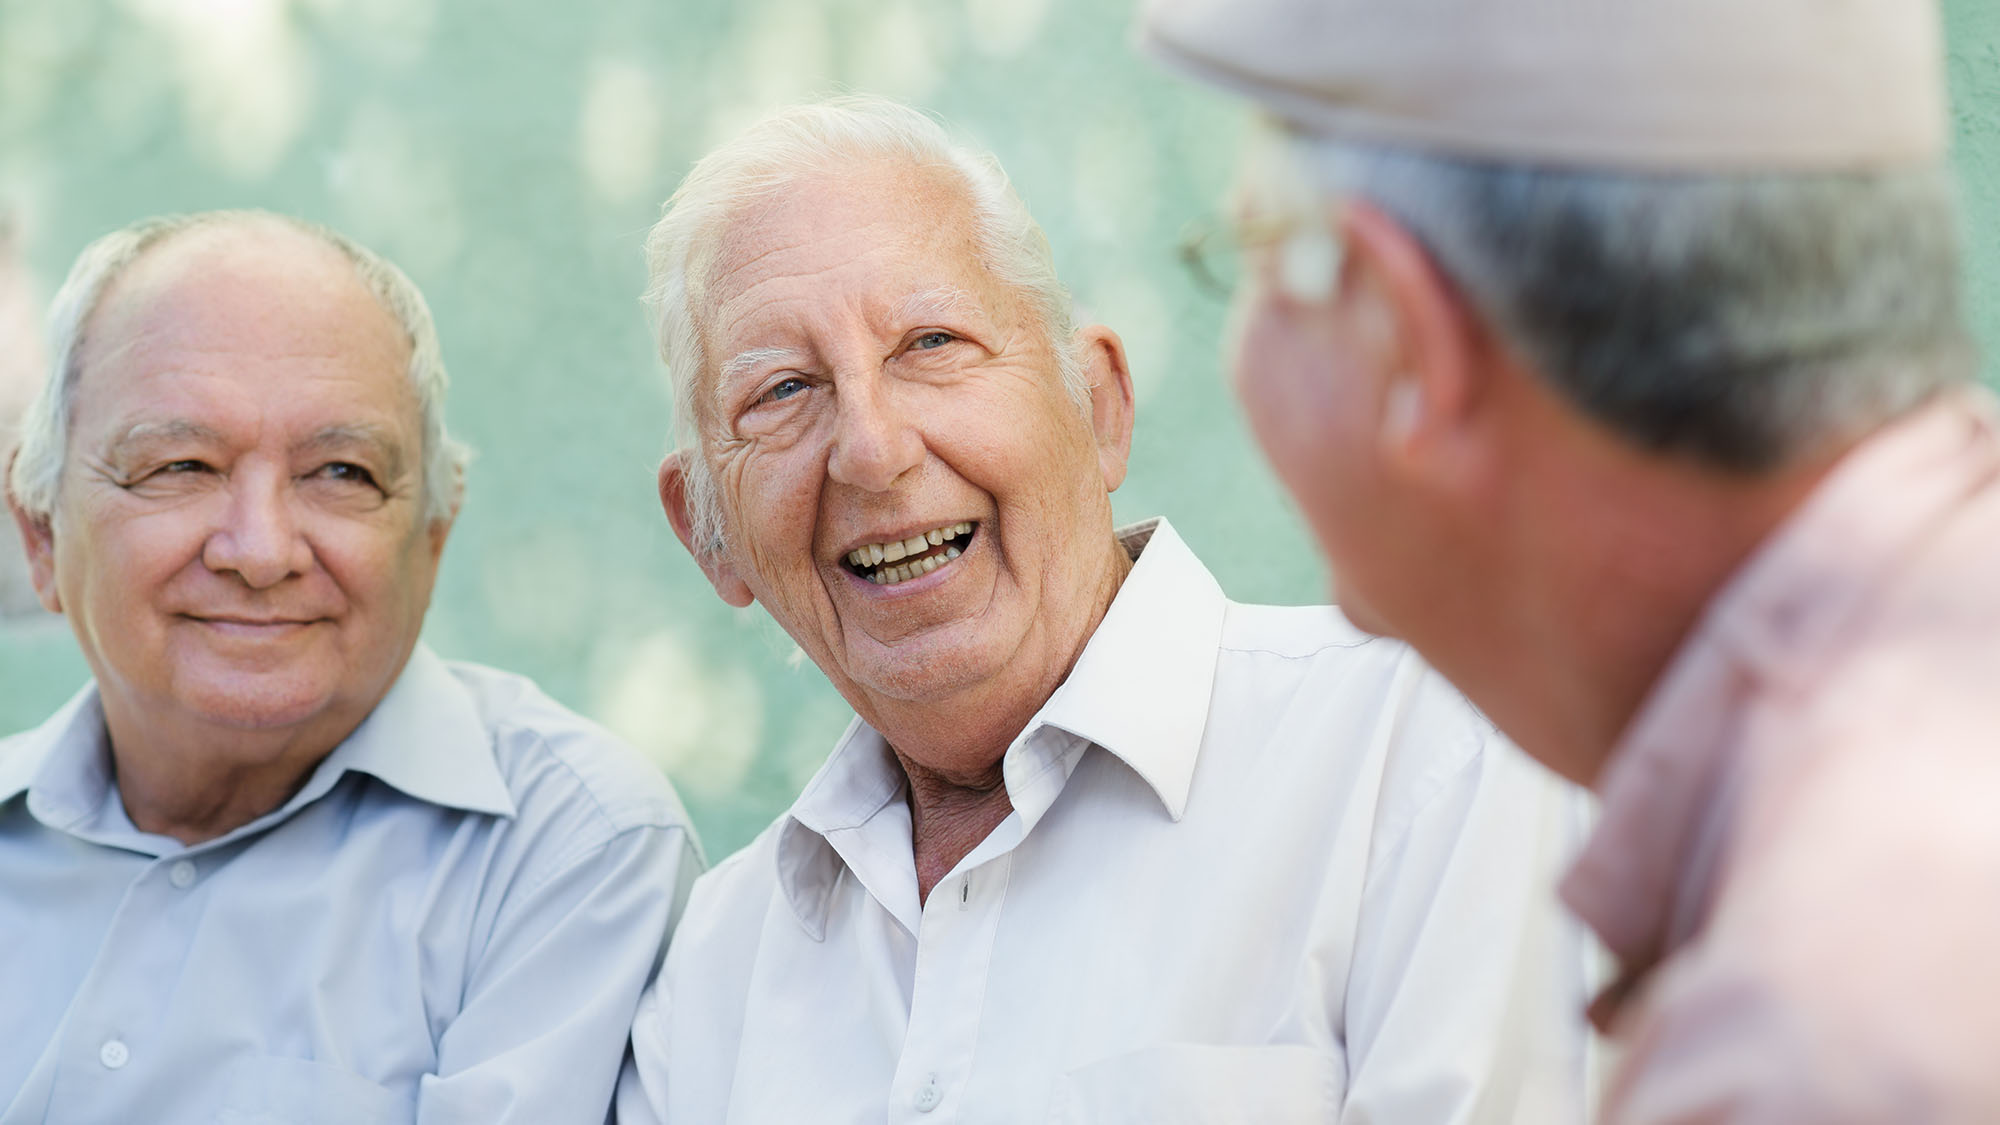 Study proves with age comes happiness | OverSixty